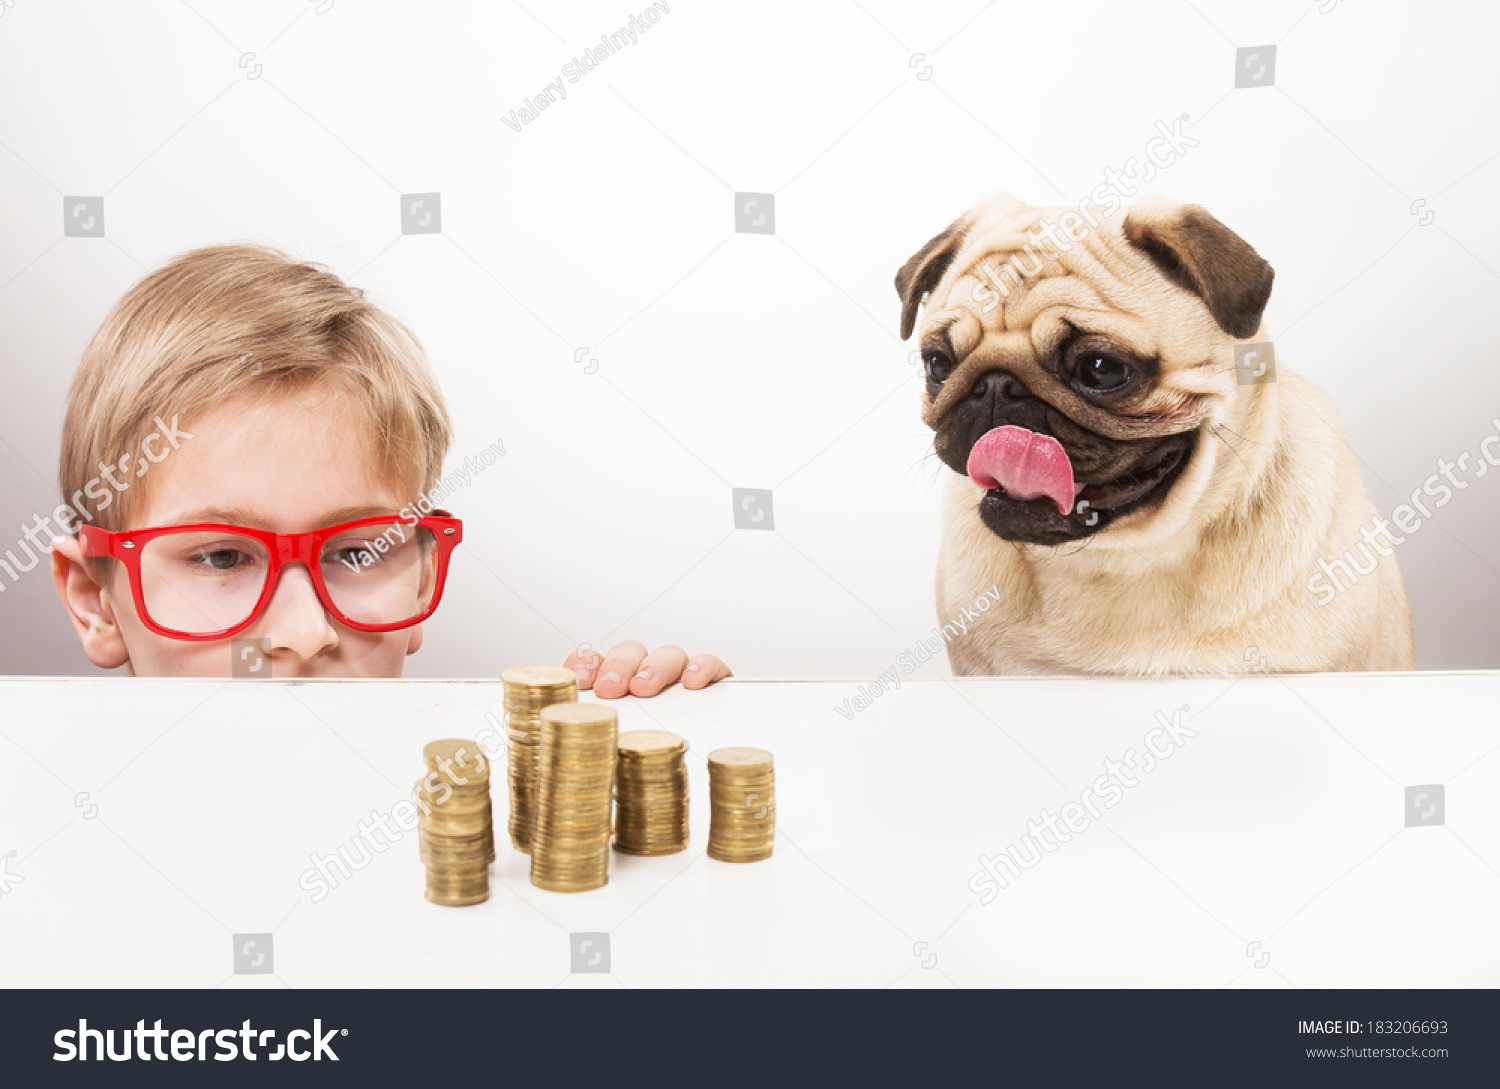 Funny Boy His Dog Looking Over Stock Photo Shutterstock - Dogs looking funny with toys